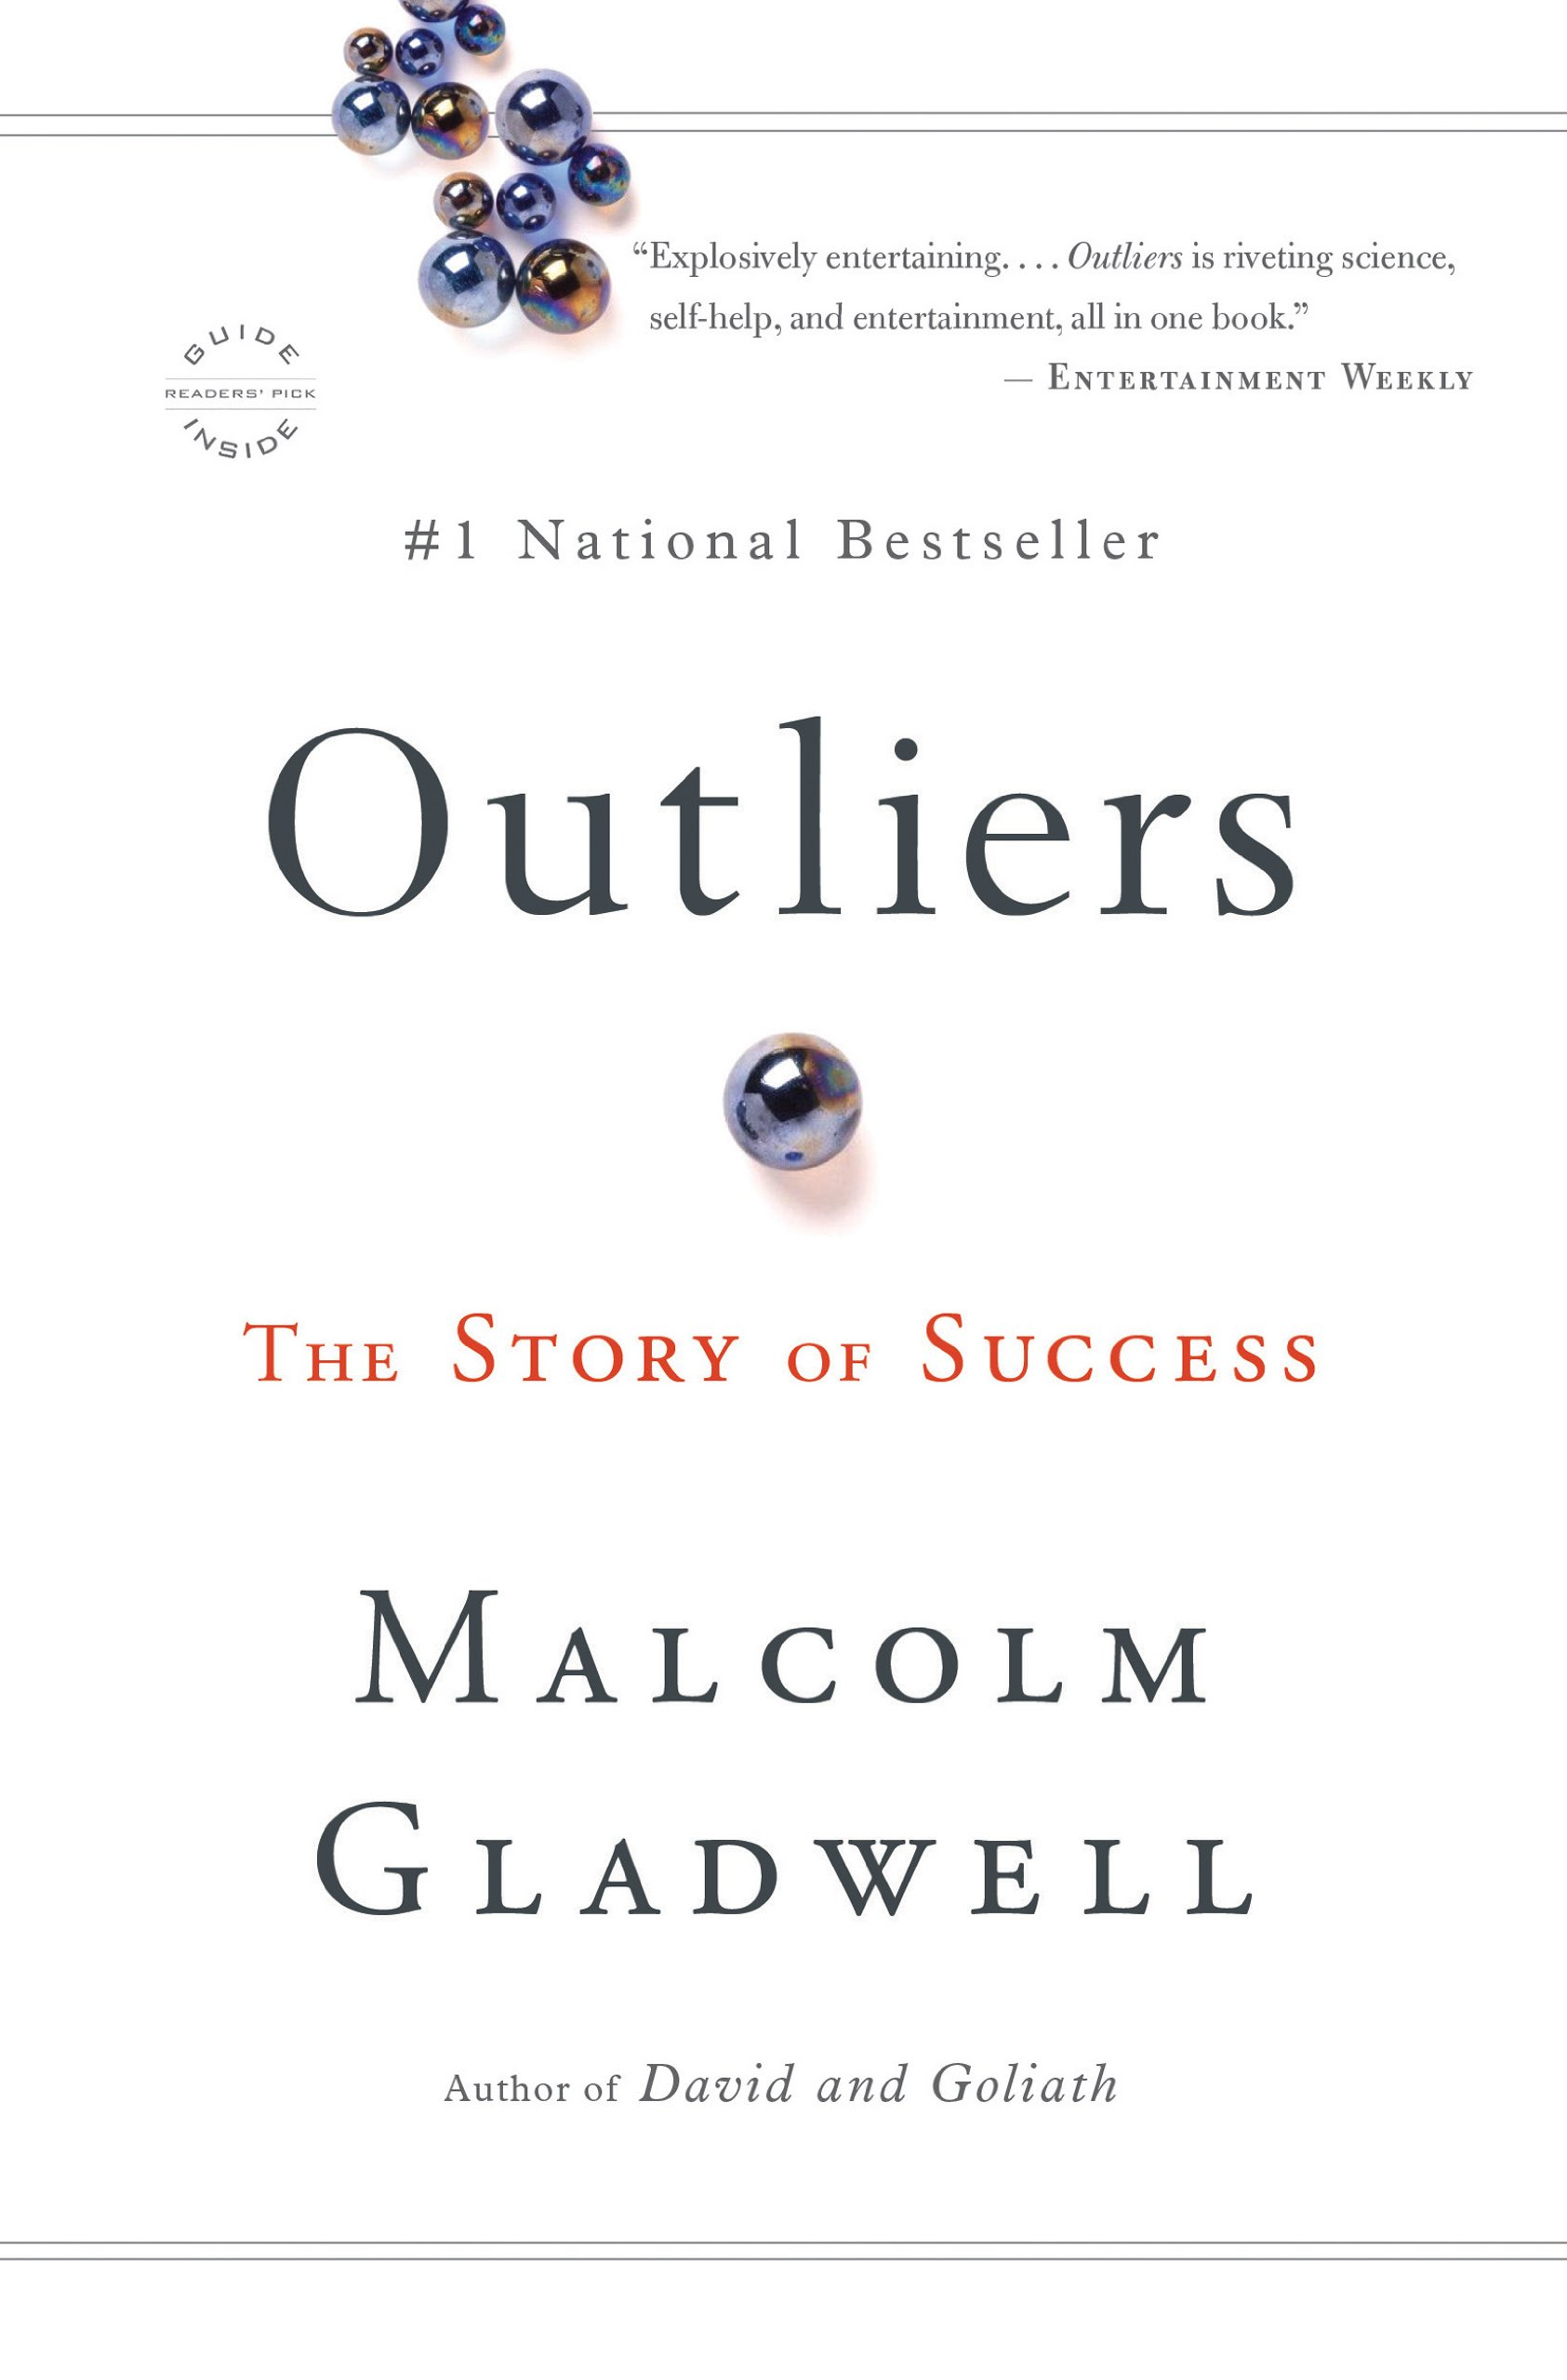 TestAsin_B0747RBGQL_Outliers: The Story of Success: TestAsin_B0747RBGQL_The Story of Success